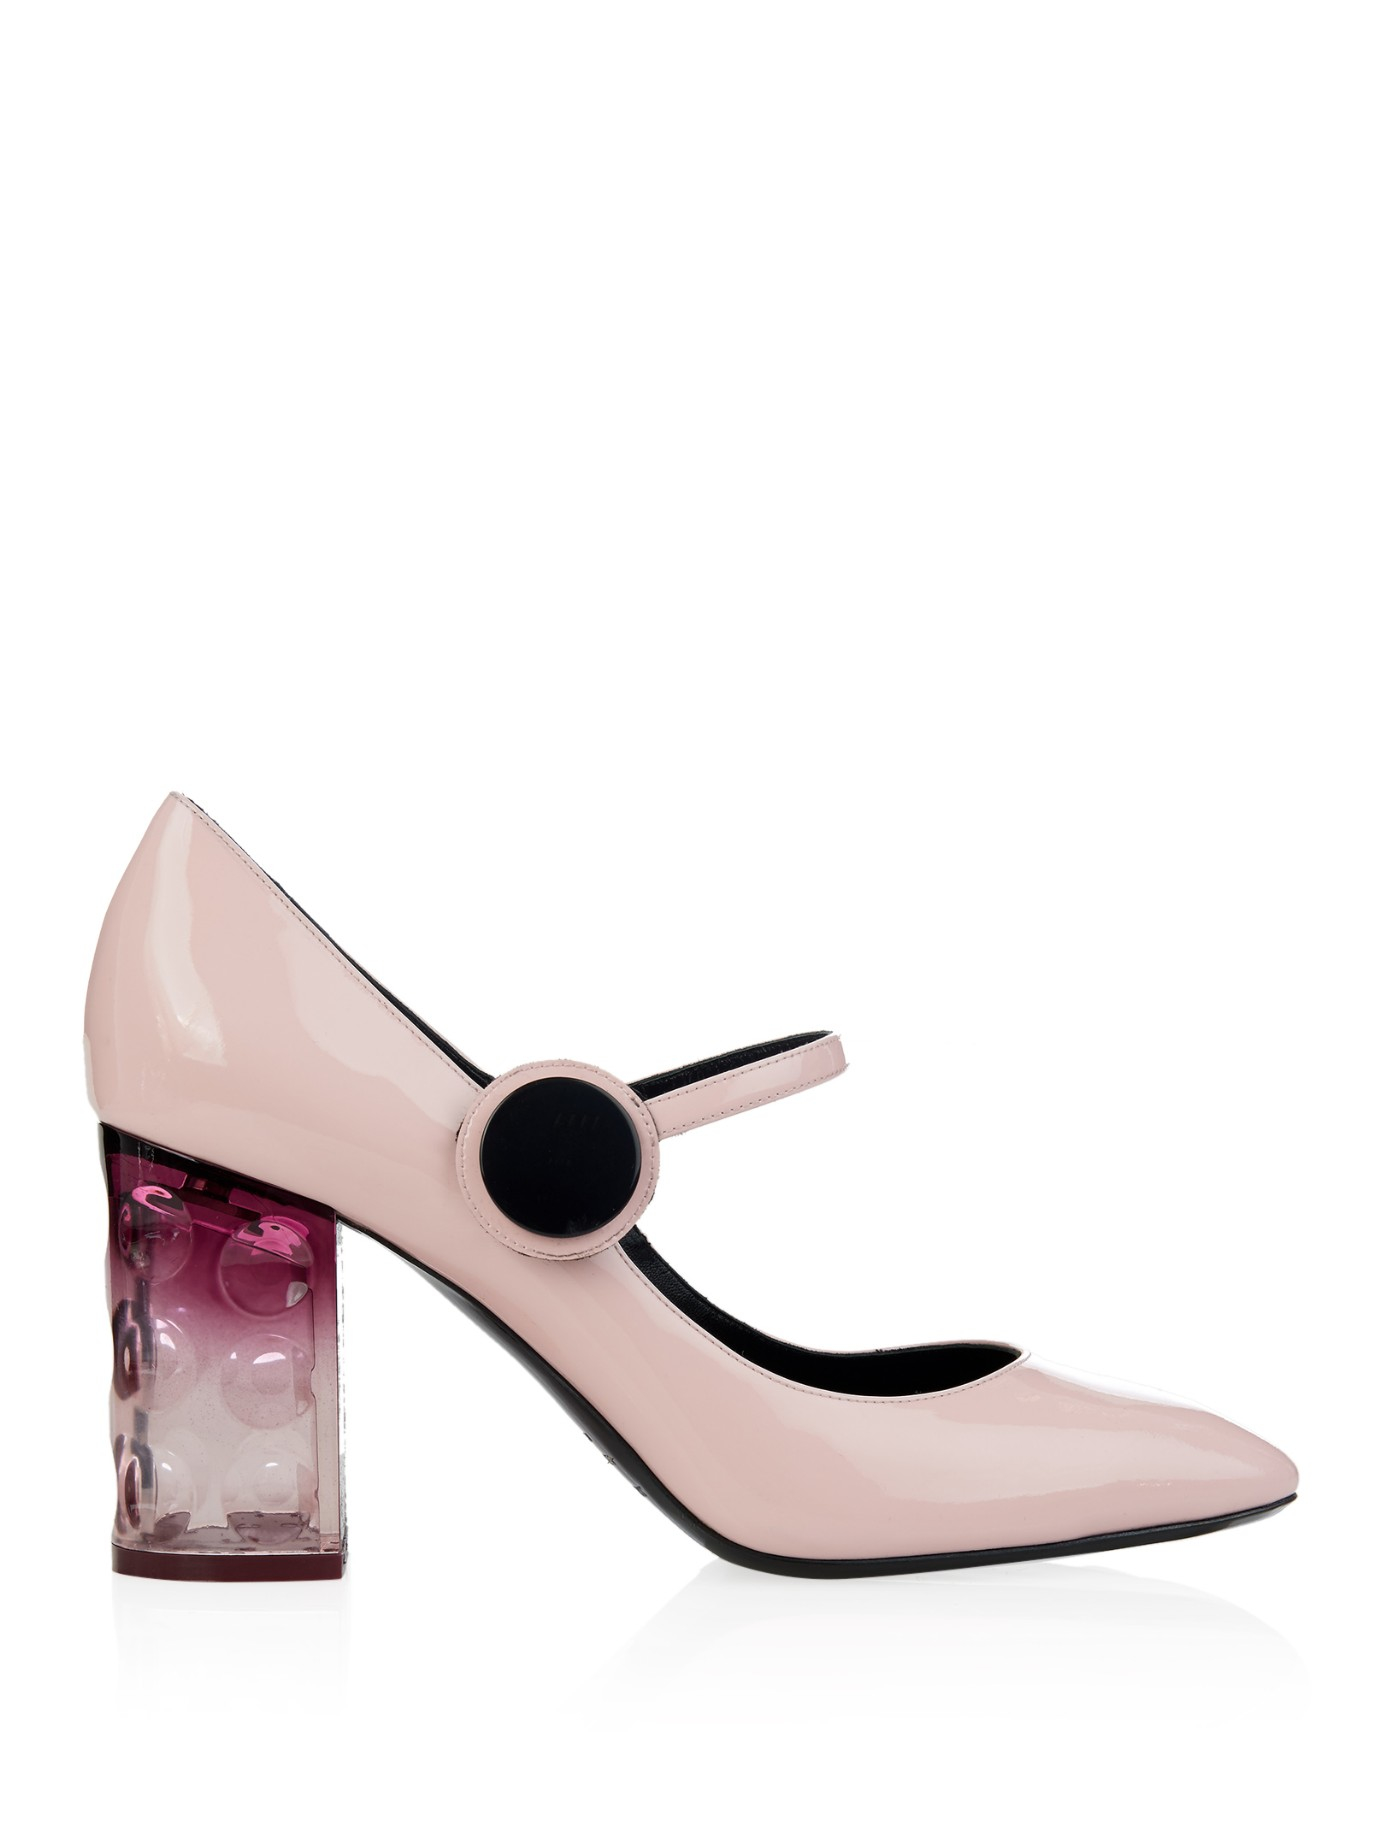 31a190f12d0 Nicholas Kirkwood Carnaby Patent-Leather Block-Heel Pumps in Pink - Lyst